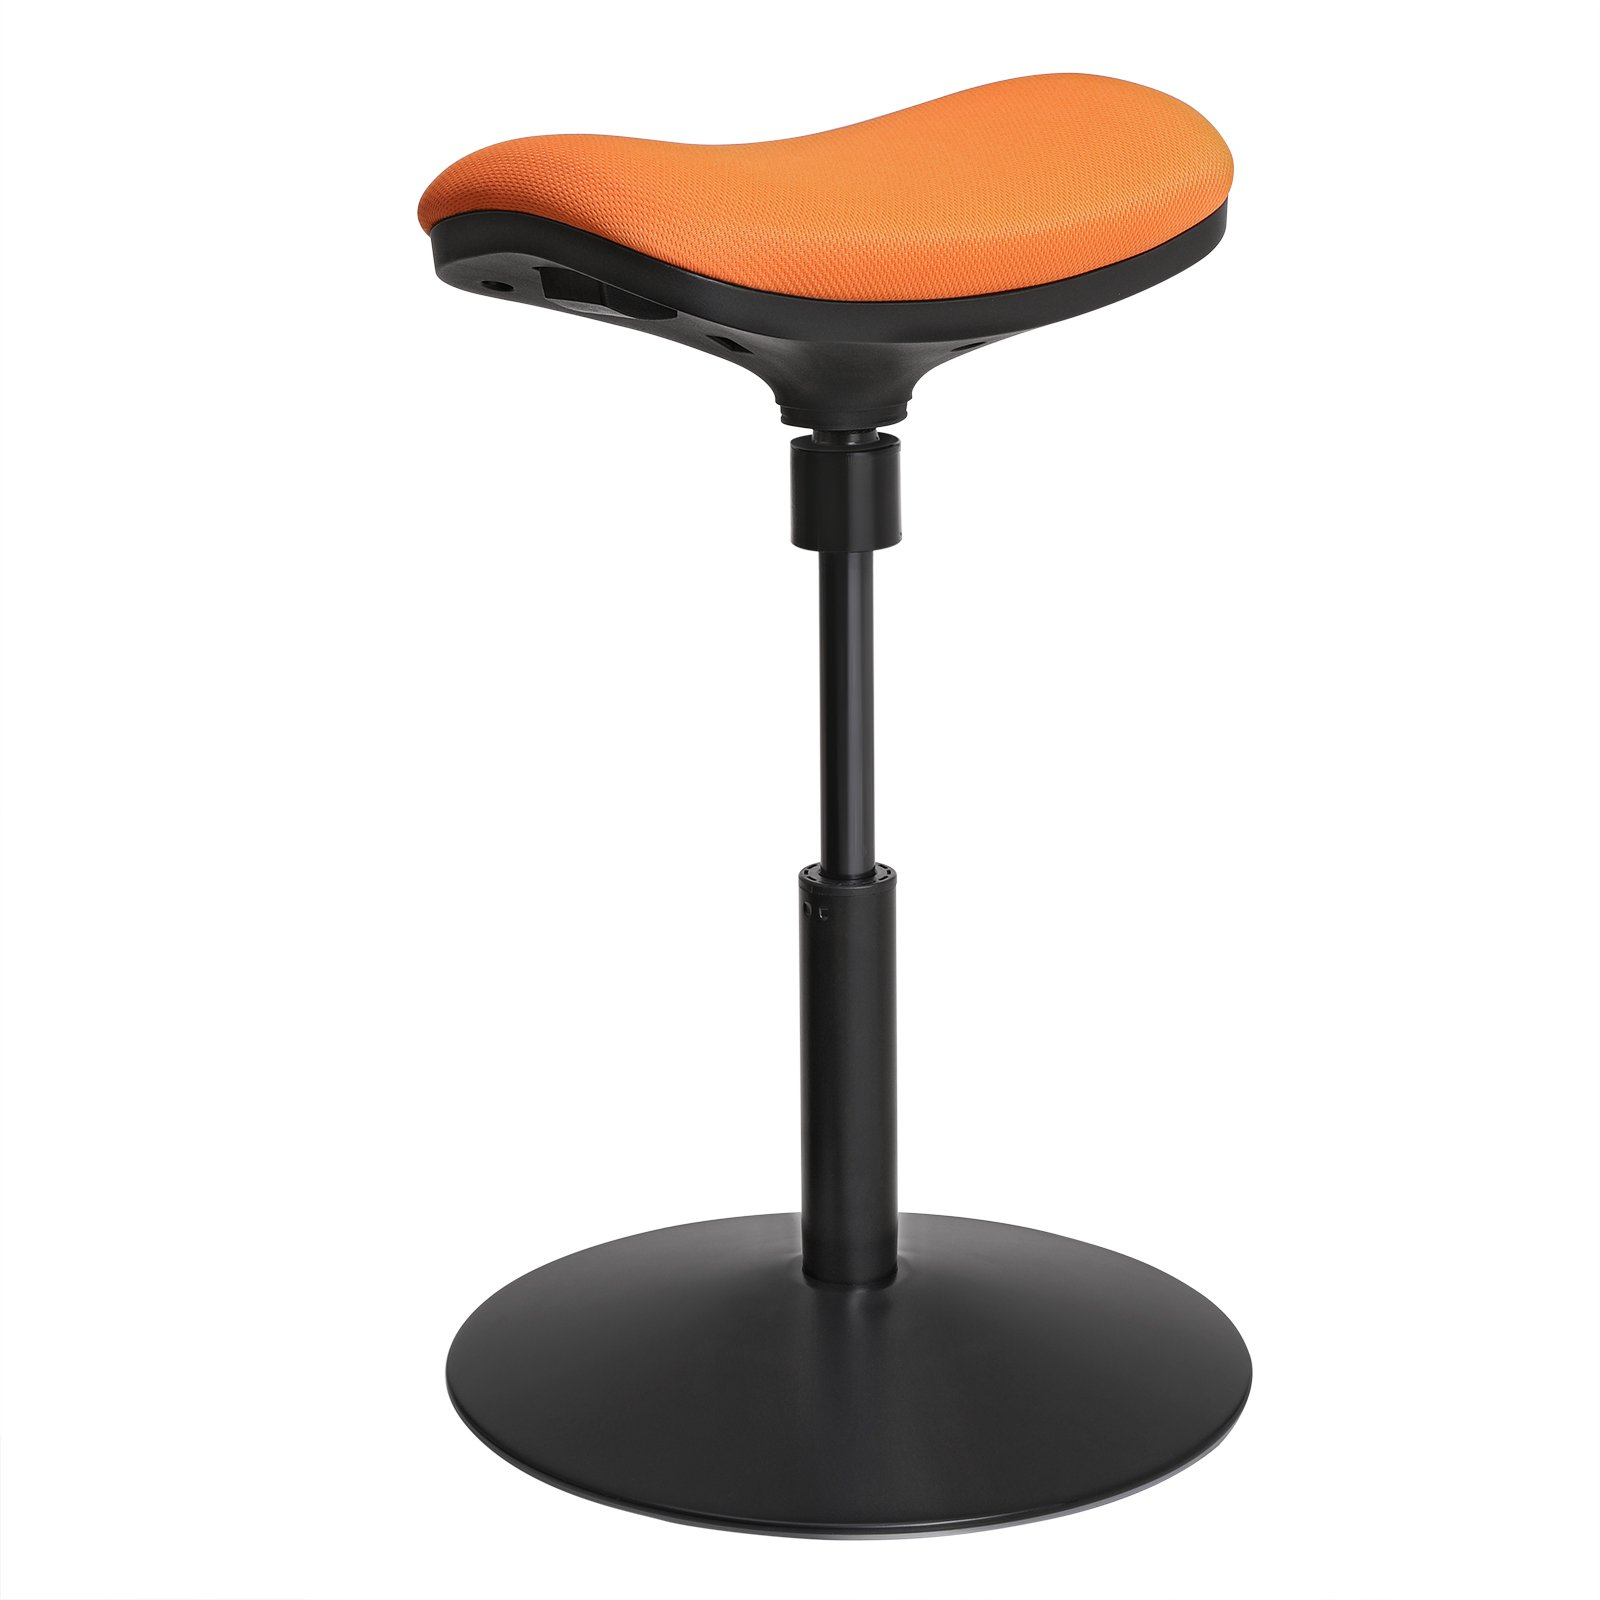 SONGMICS Active Stool, Adjustable Height Standing Stool, 360° Swivel Wobble Stool, Height 20.1-25.6 Inches for Kids, for Home Office, Orange UOSC03OG by SONGMICS